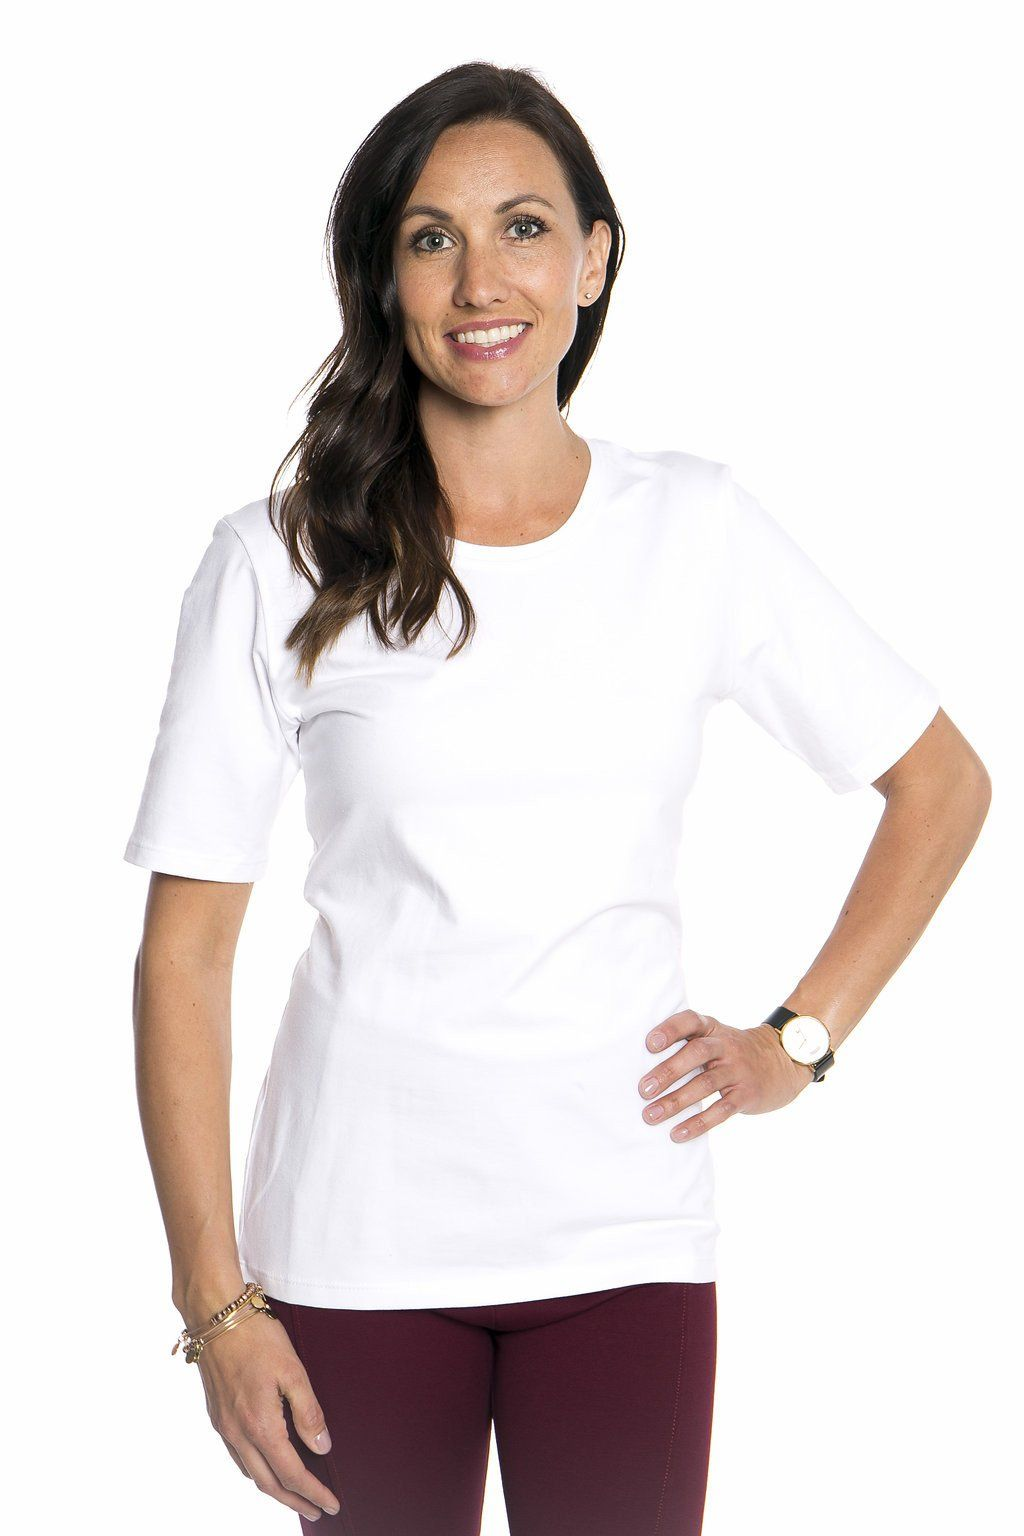 Scoop Neck 1/2 Sleeve w/o Cuff* - White - S-L